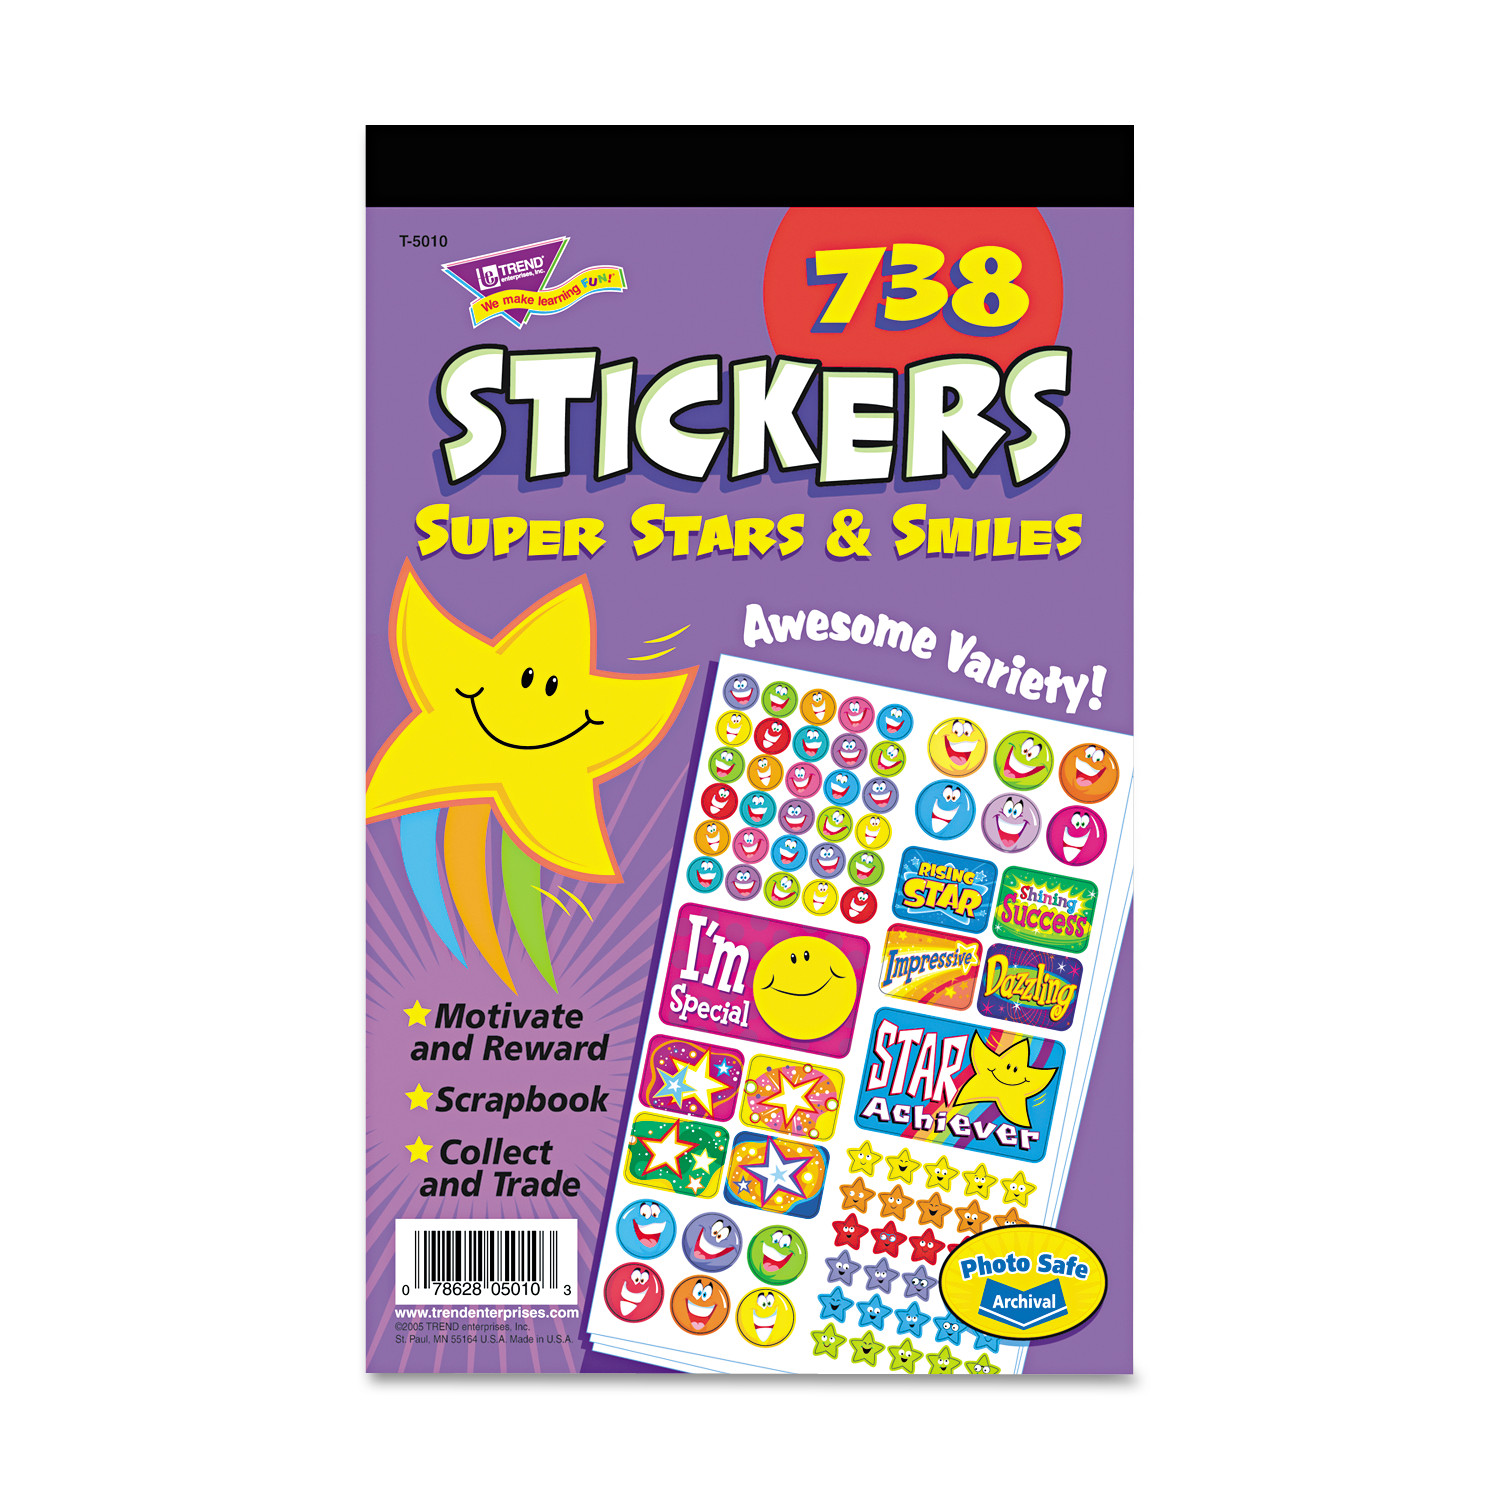 TREND Sticker Assortment Pack, Super Stars and Smiles, 738 Stickers/Pad -TEPT5010